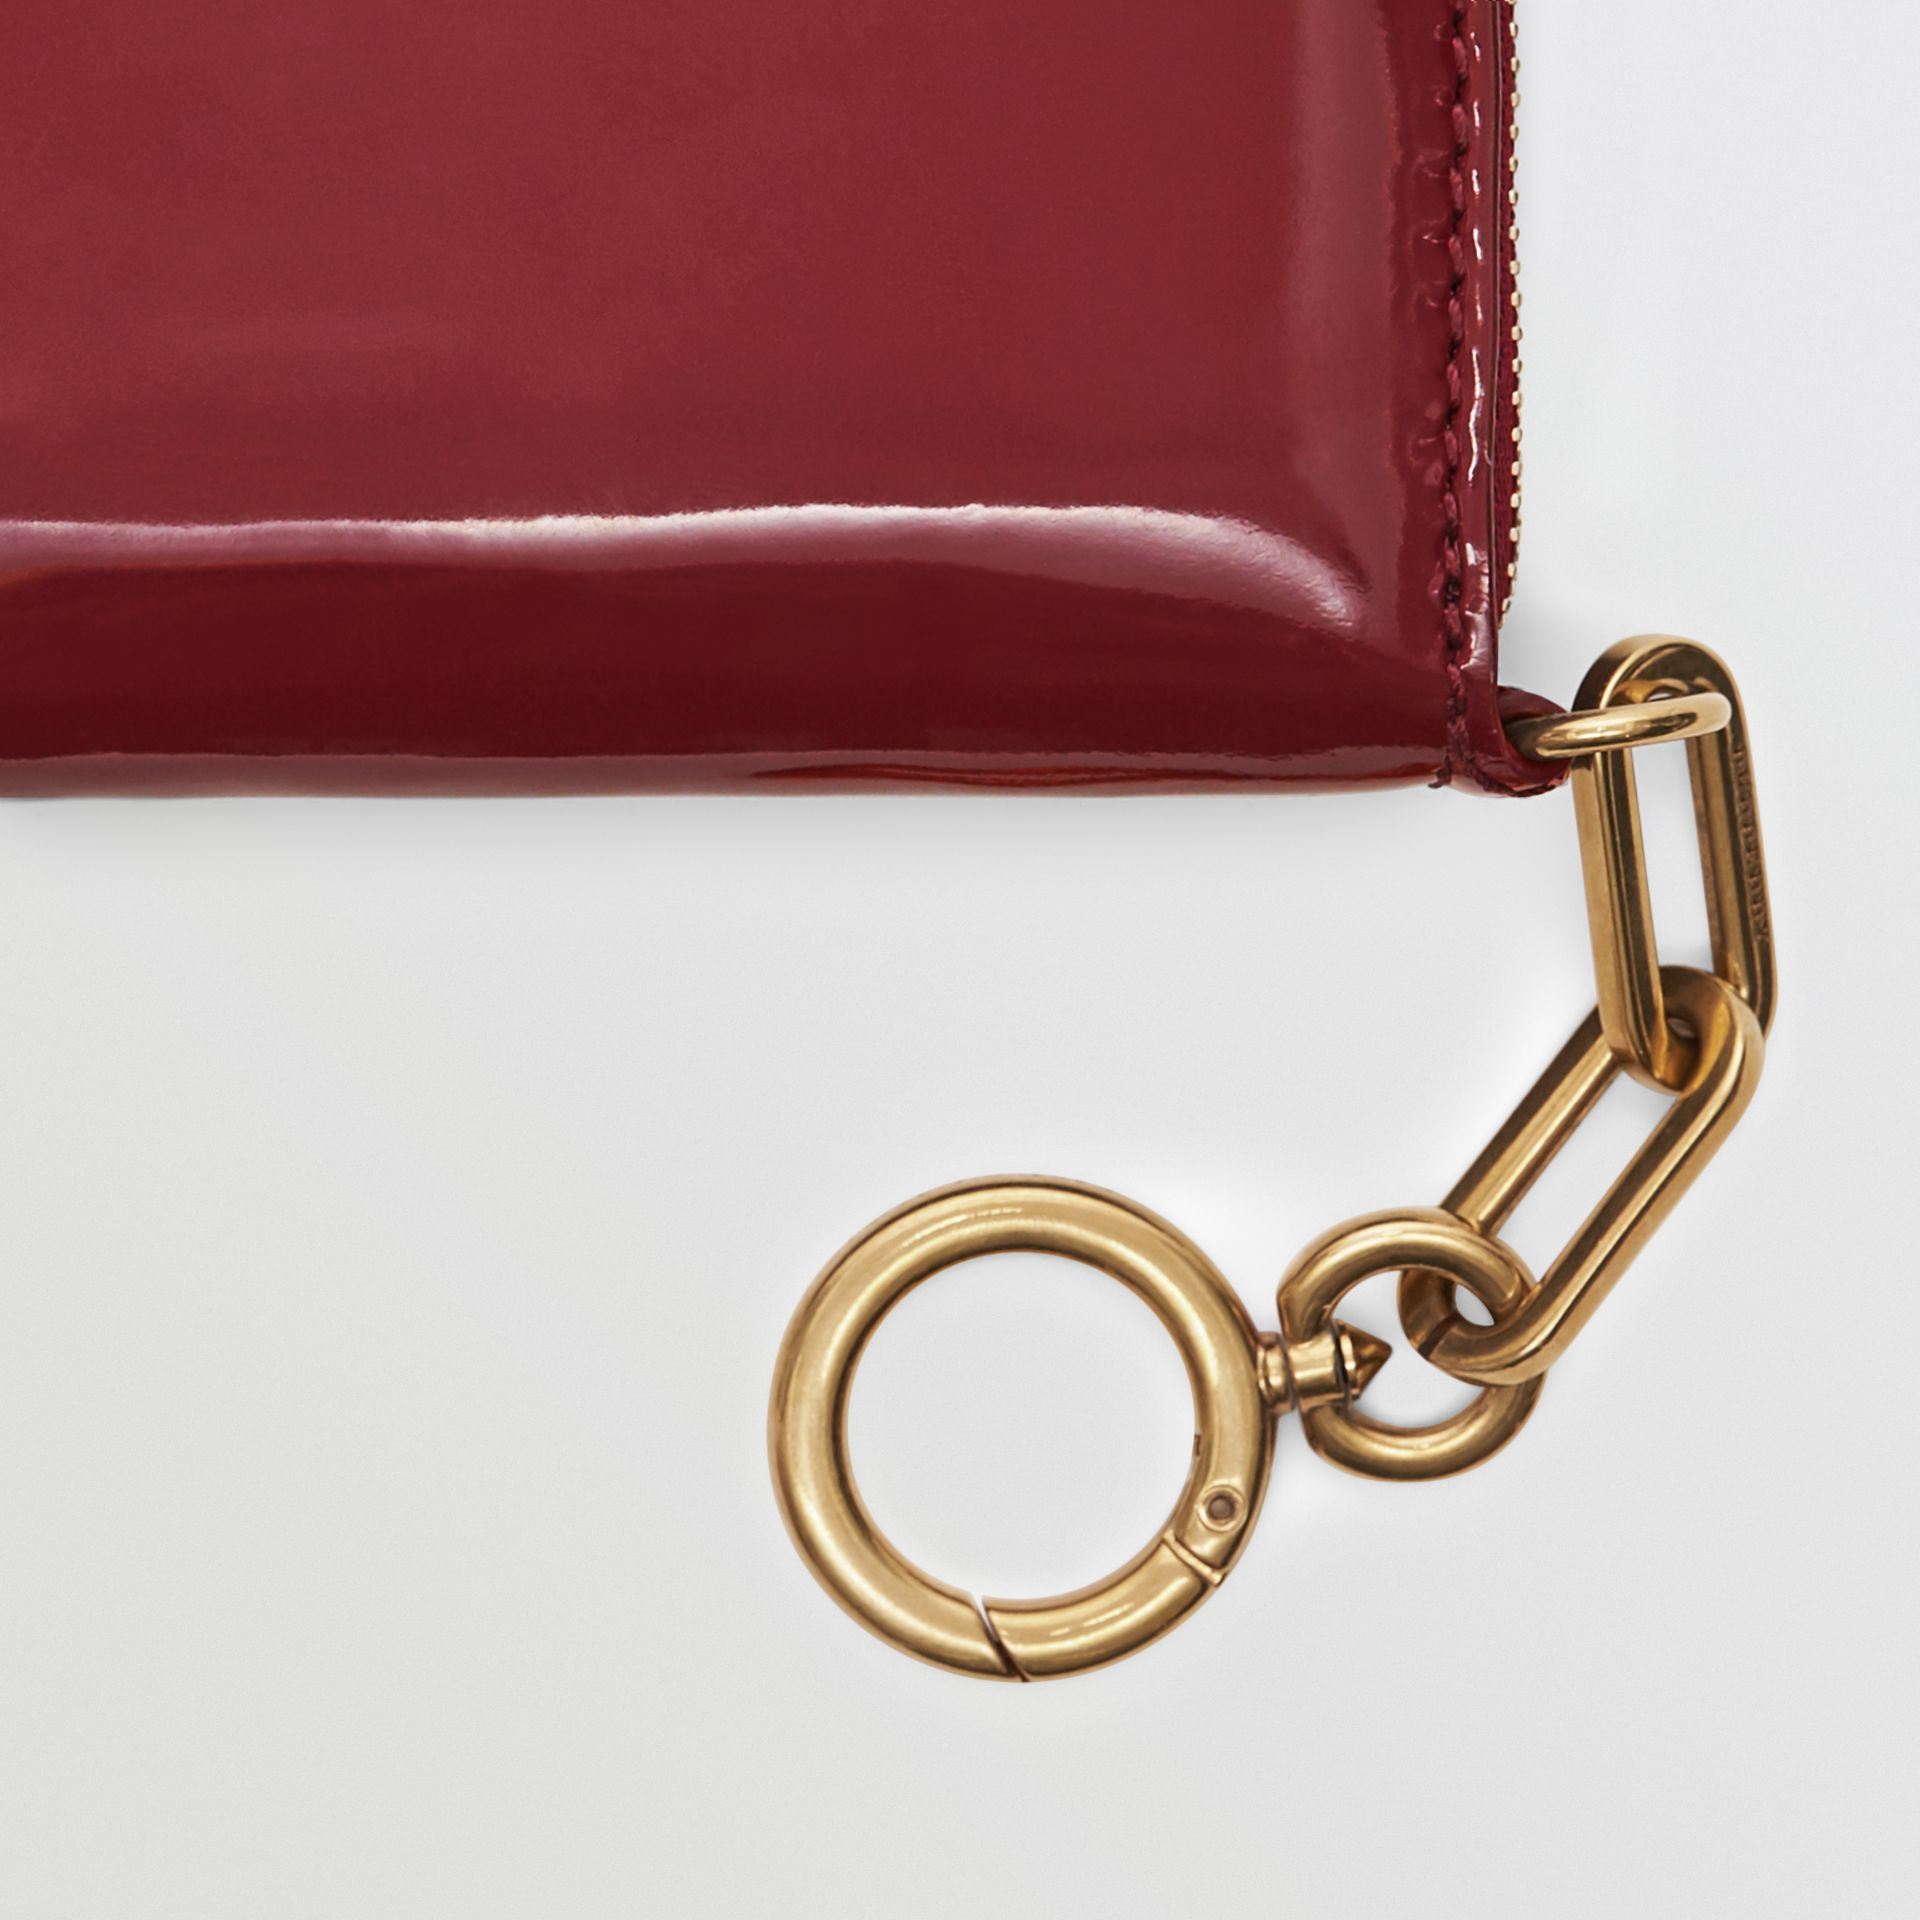 Link Detail Patent Leather Ziparound Wallet in Crimson - Women | Burberry Canada - gallery image 1